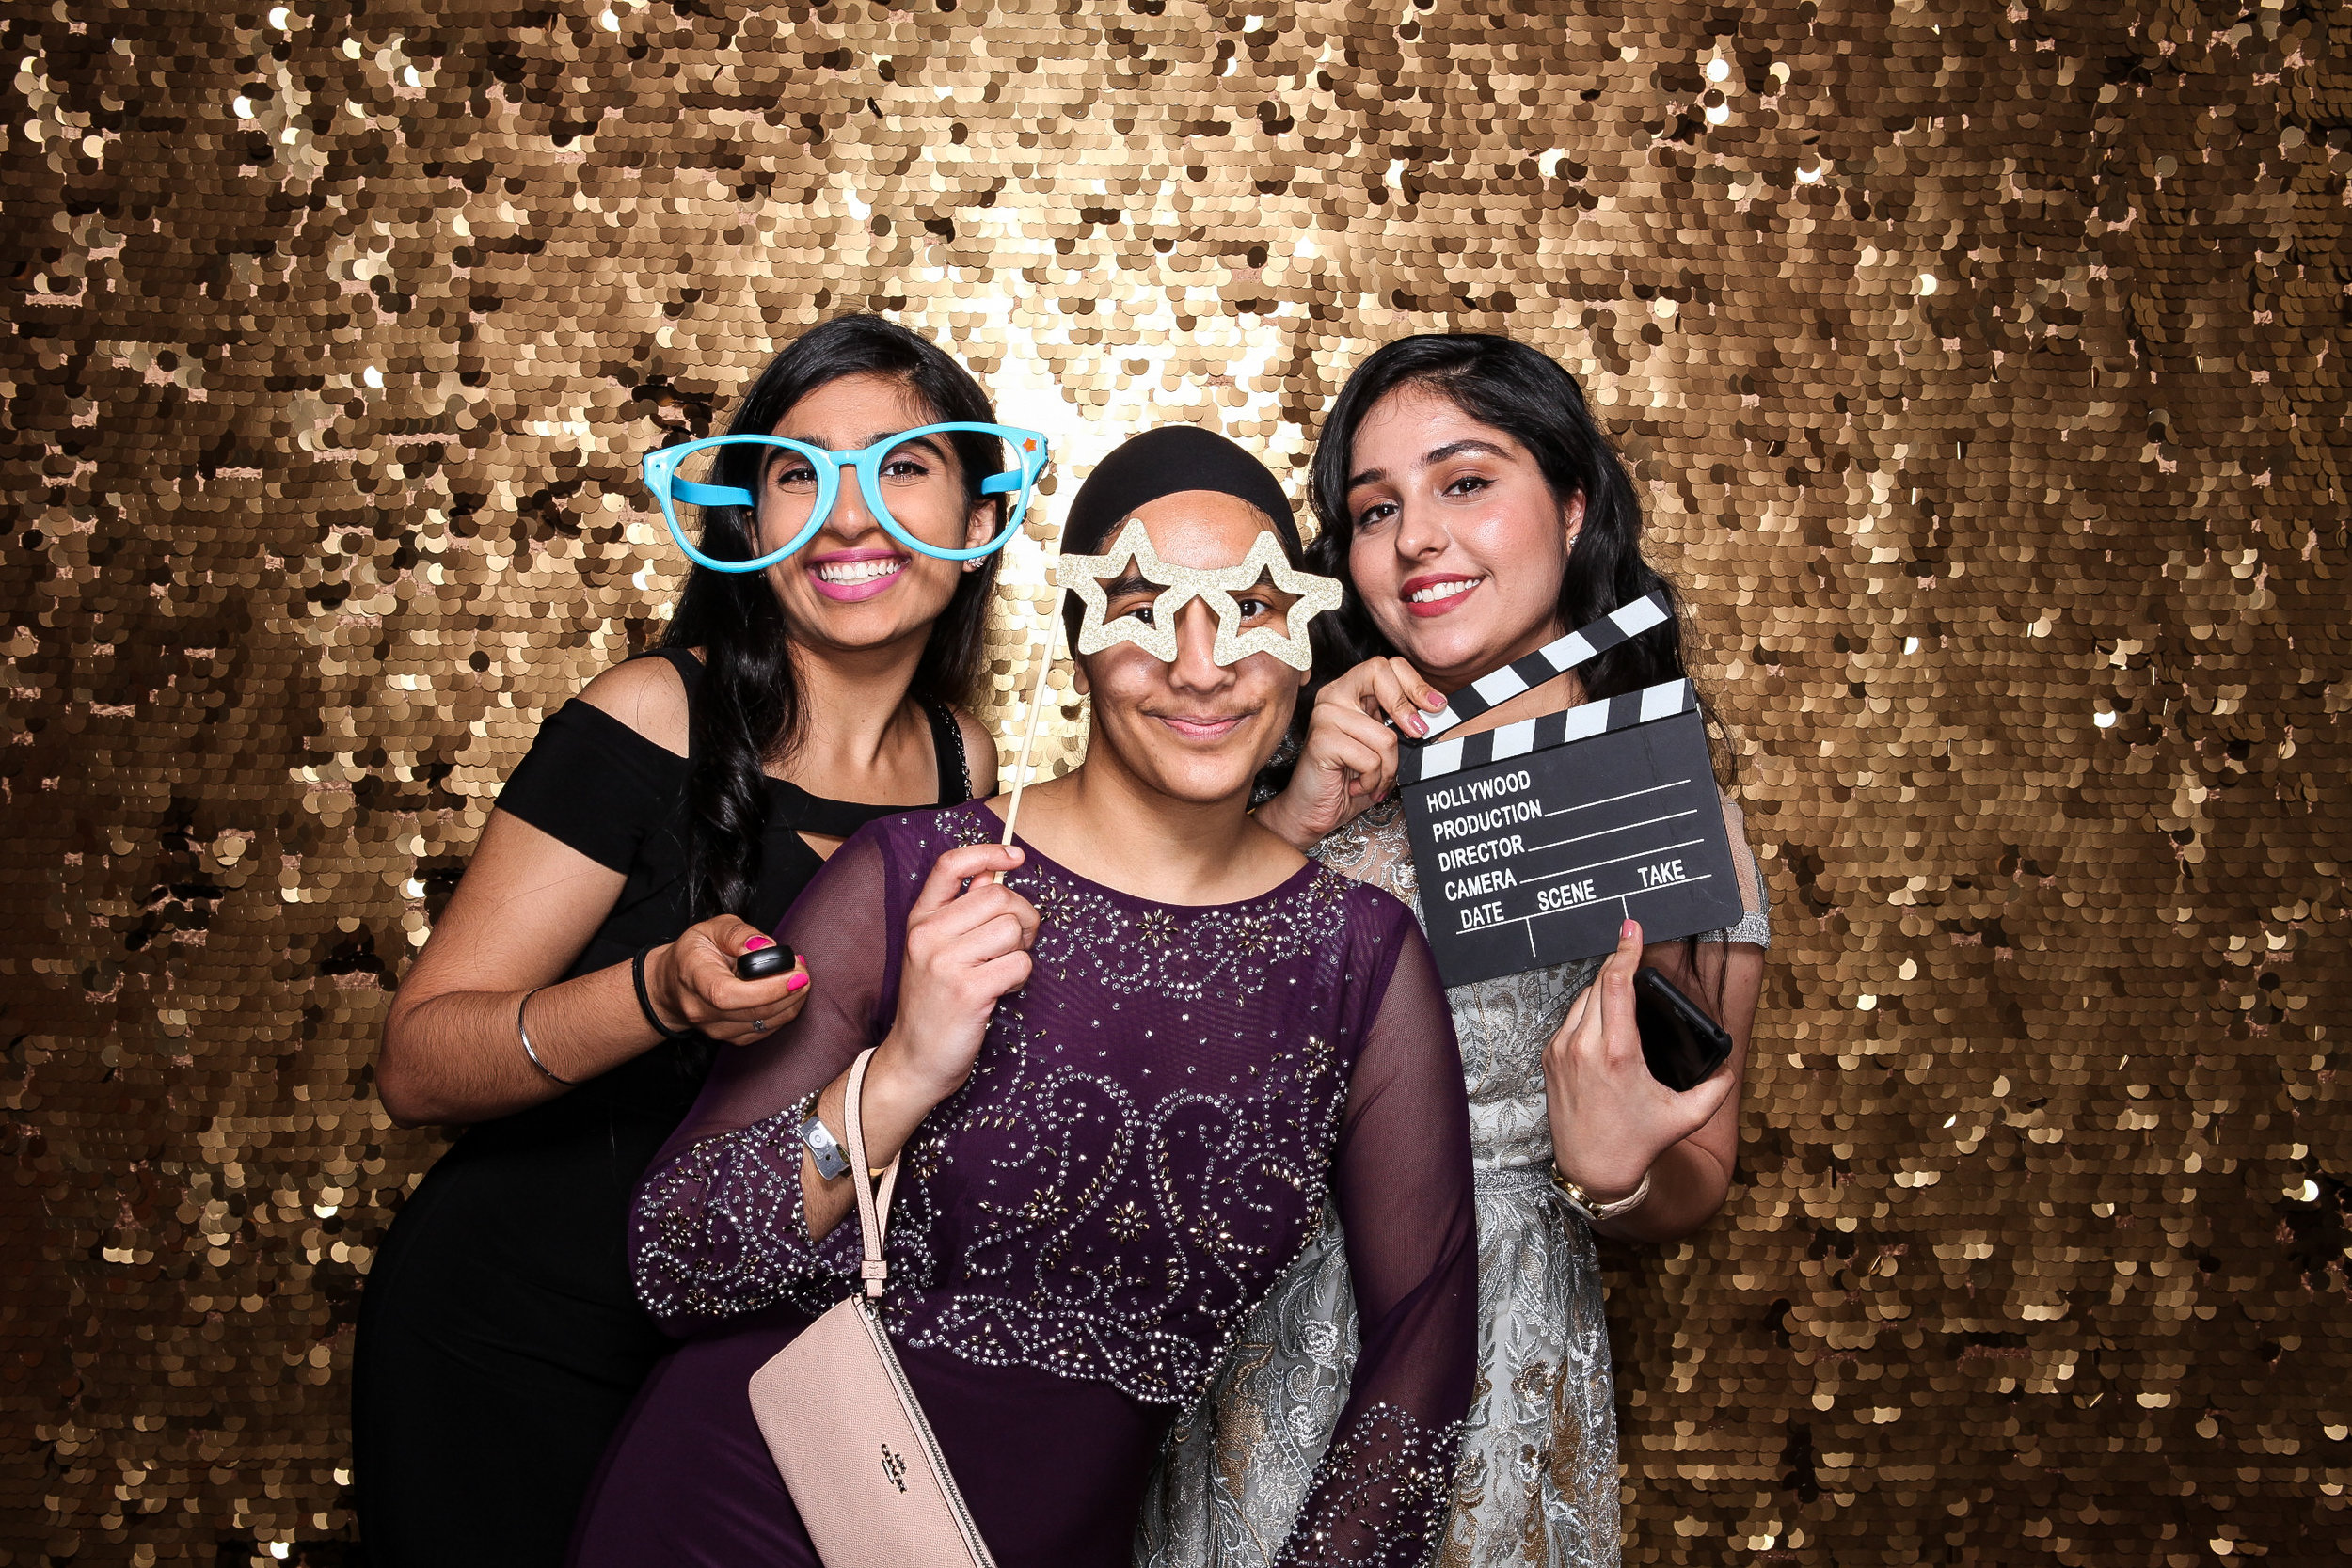 20190503_Adelphi_Senior_Formal-076.jpg